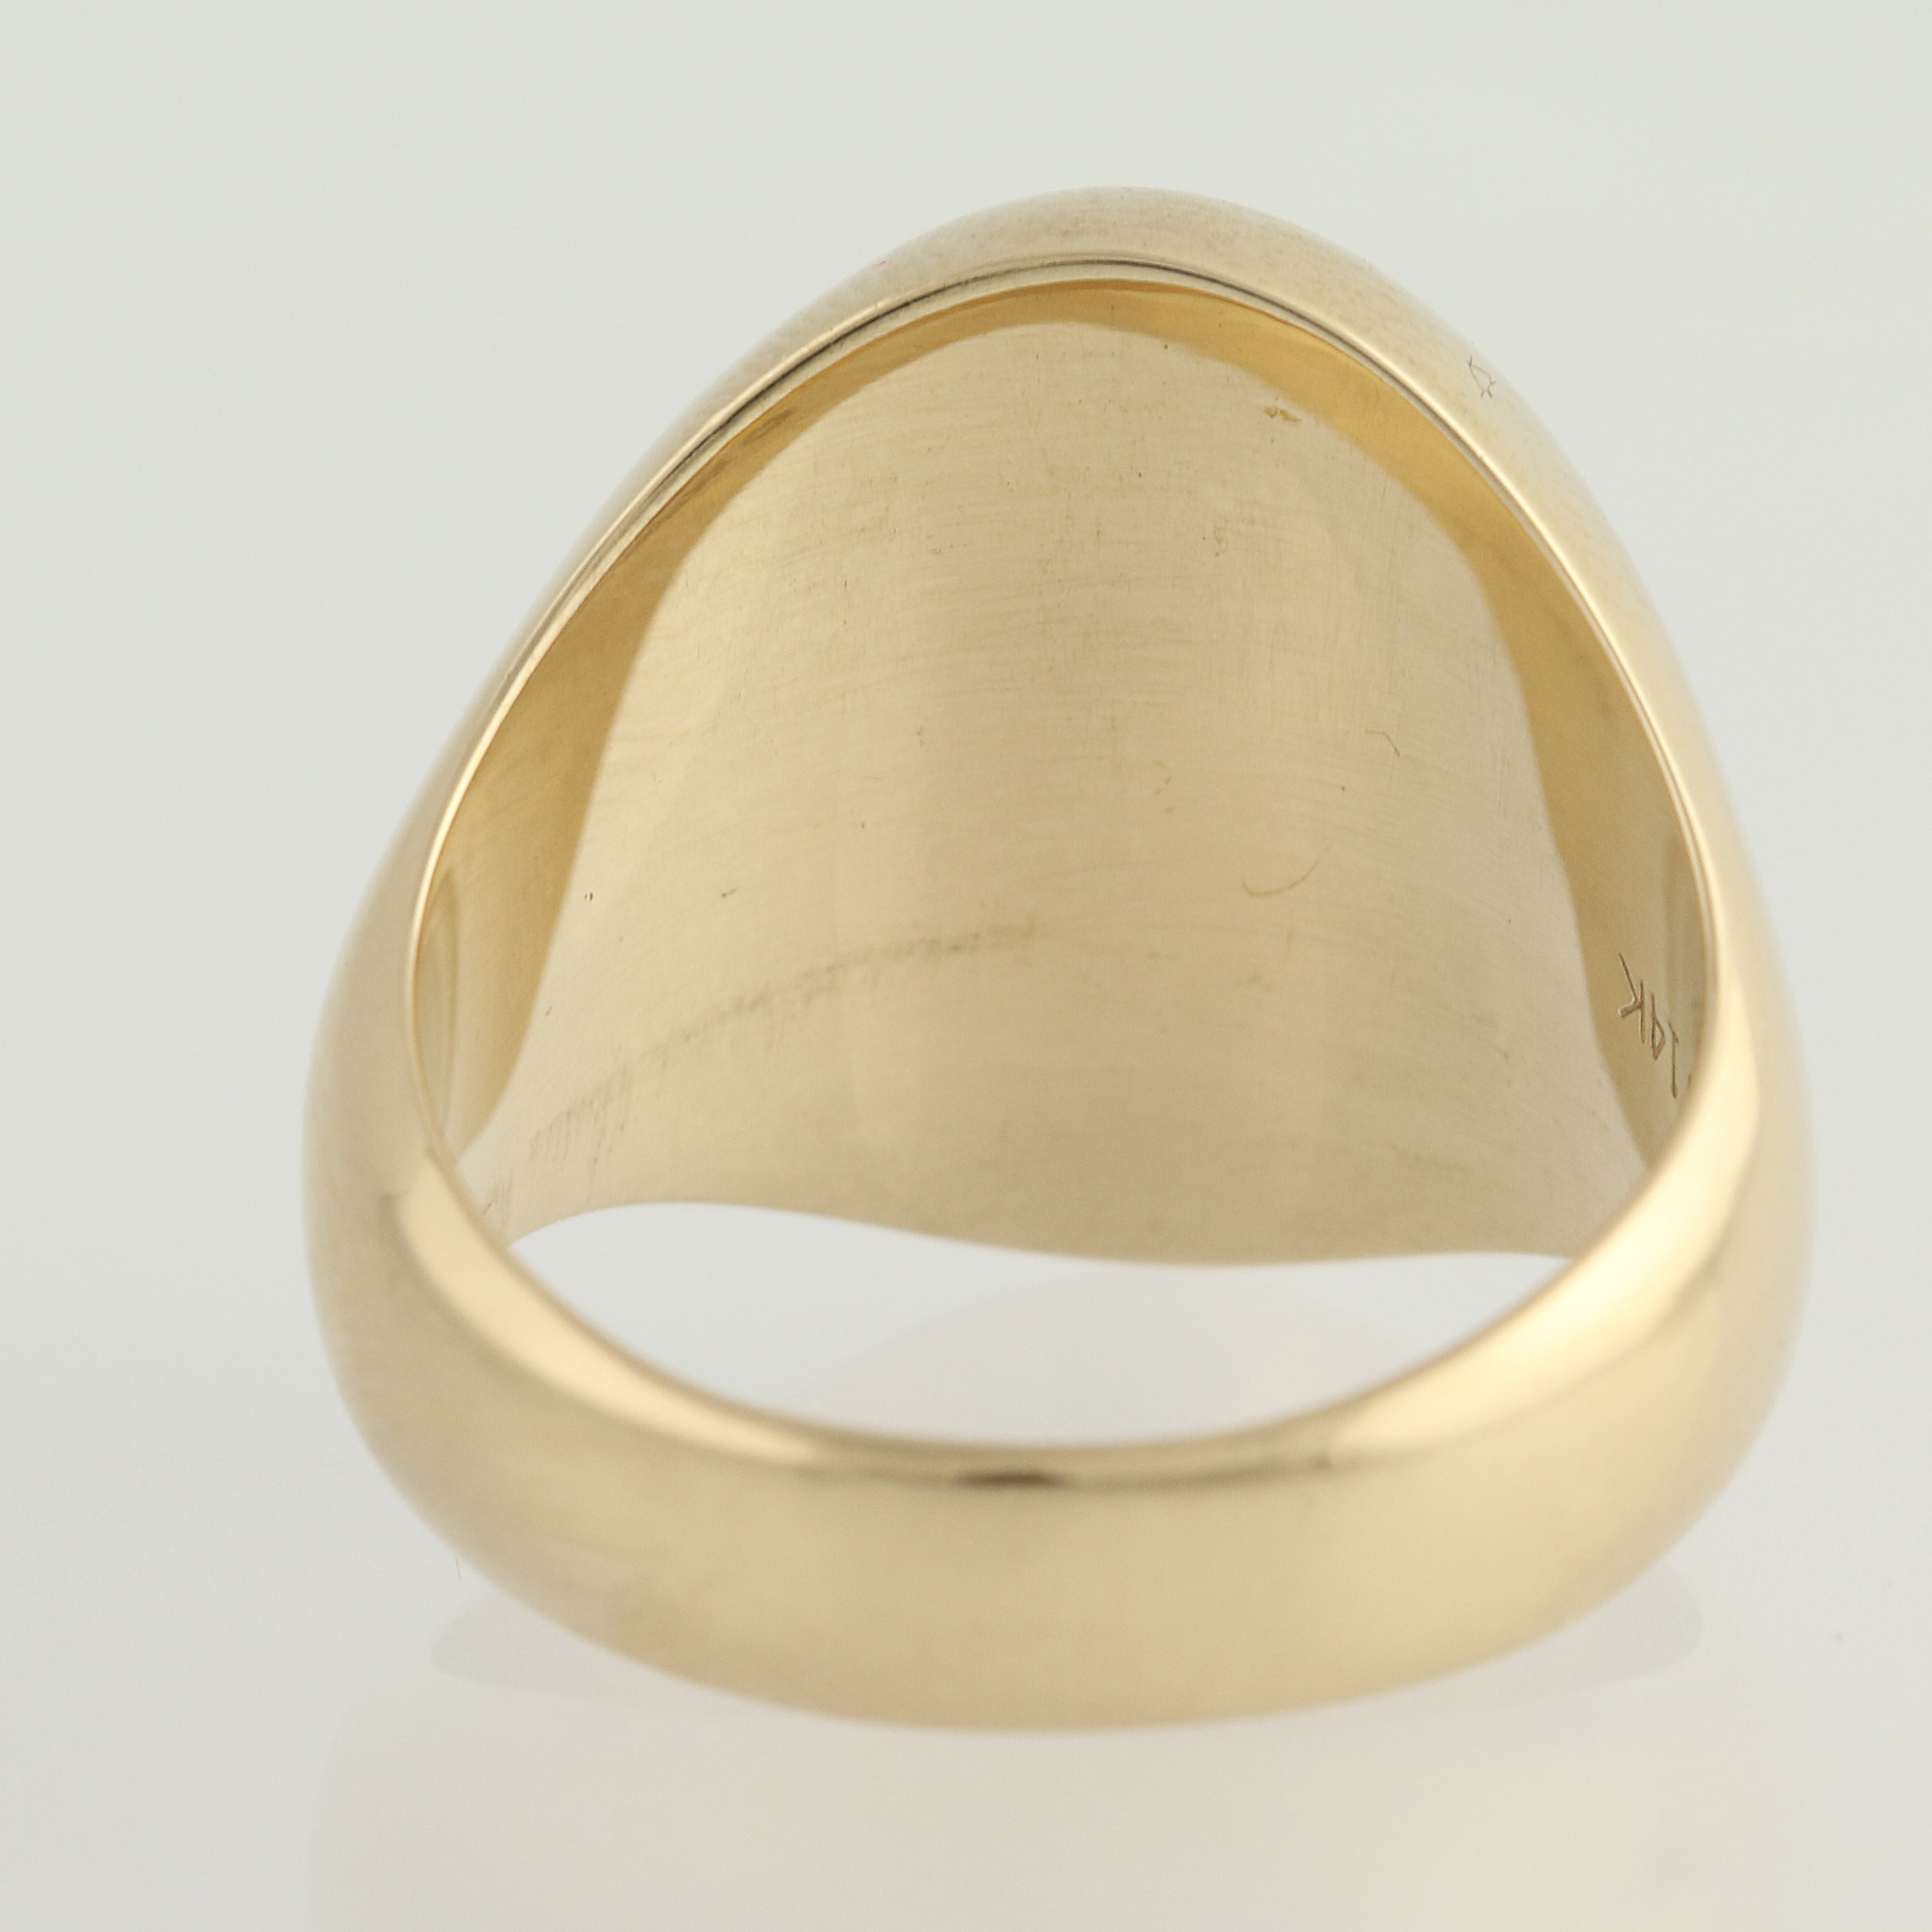 woodberry forest school class ring 14k yellow gold s